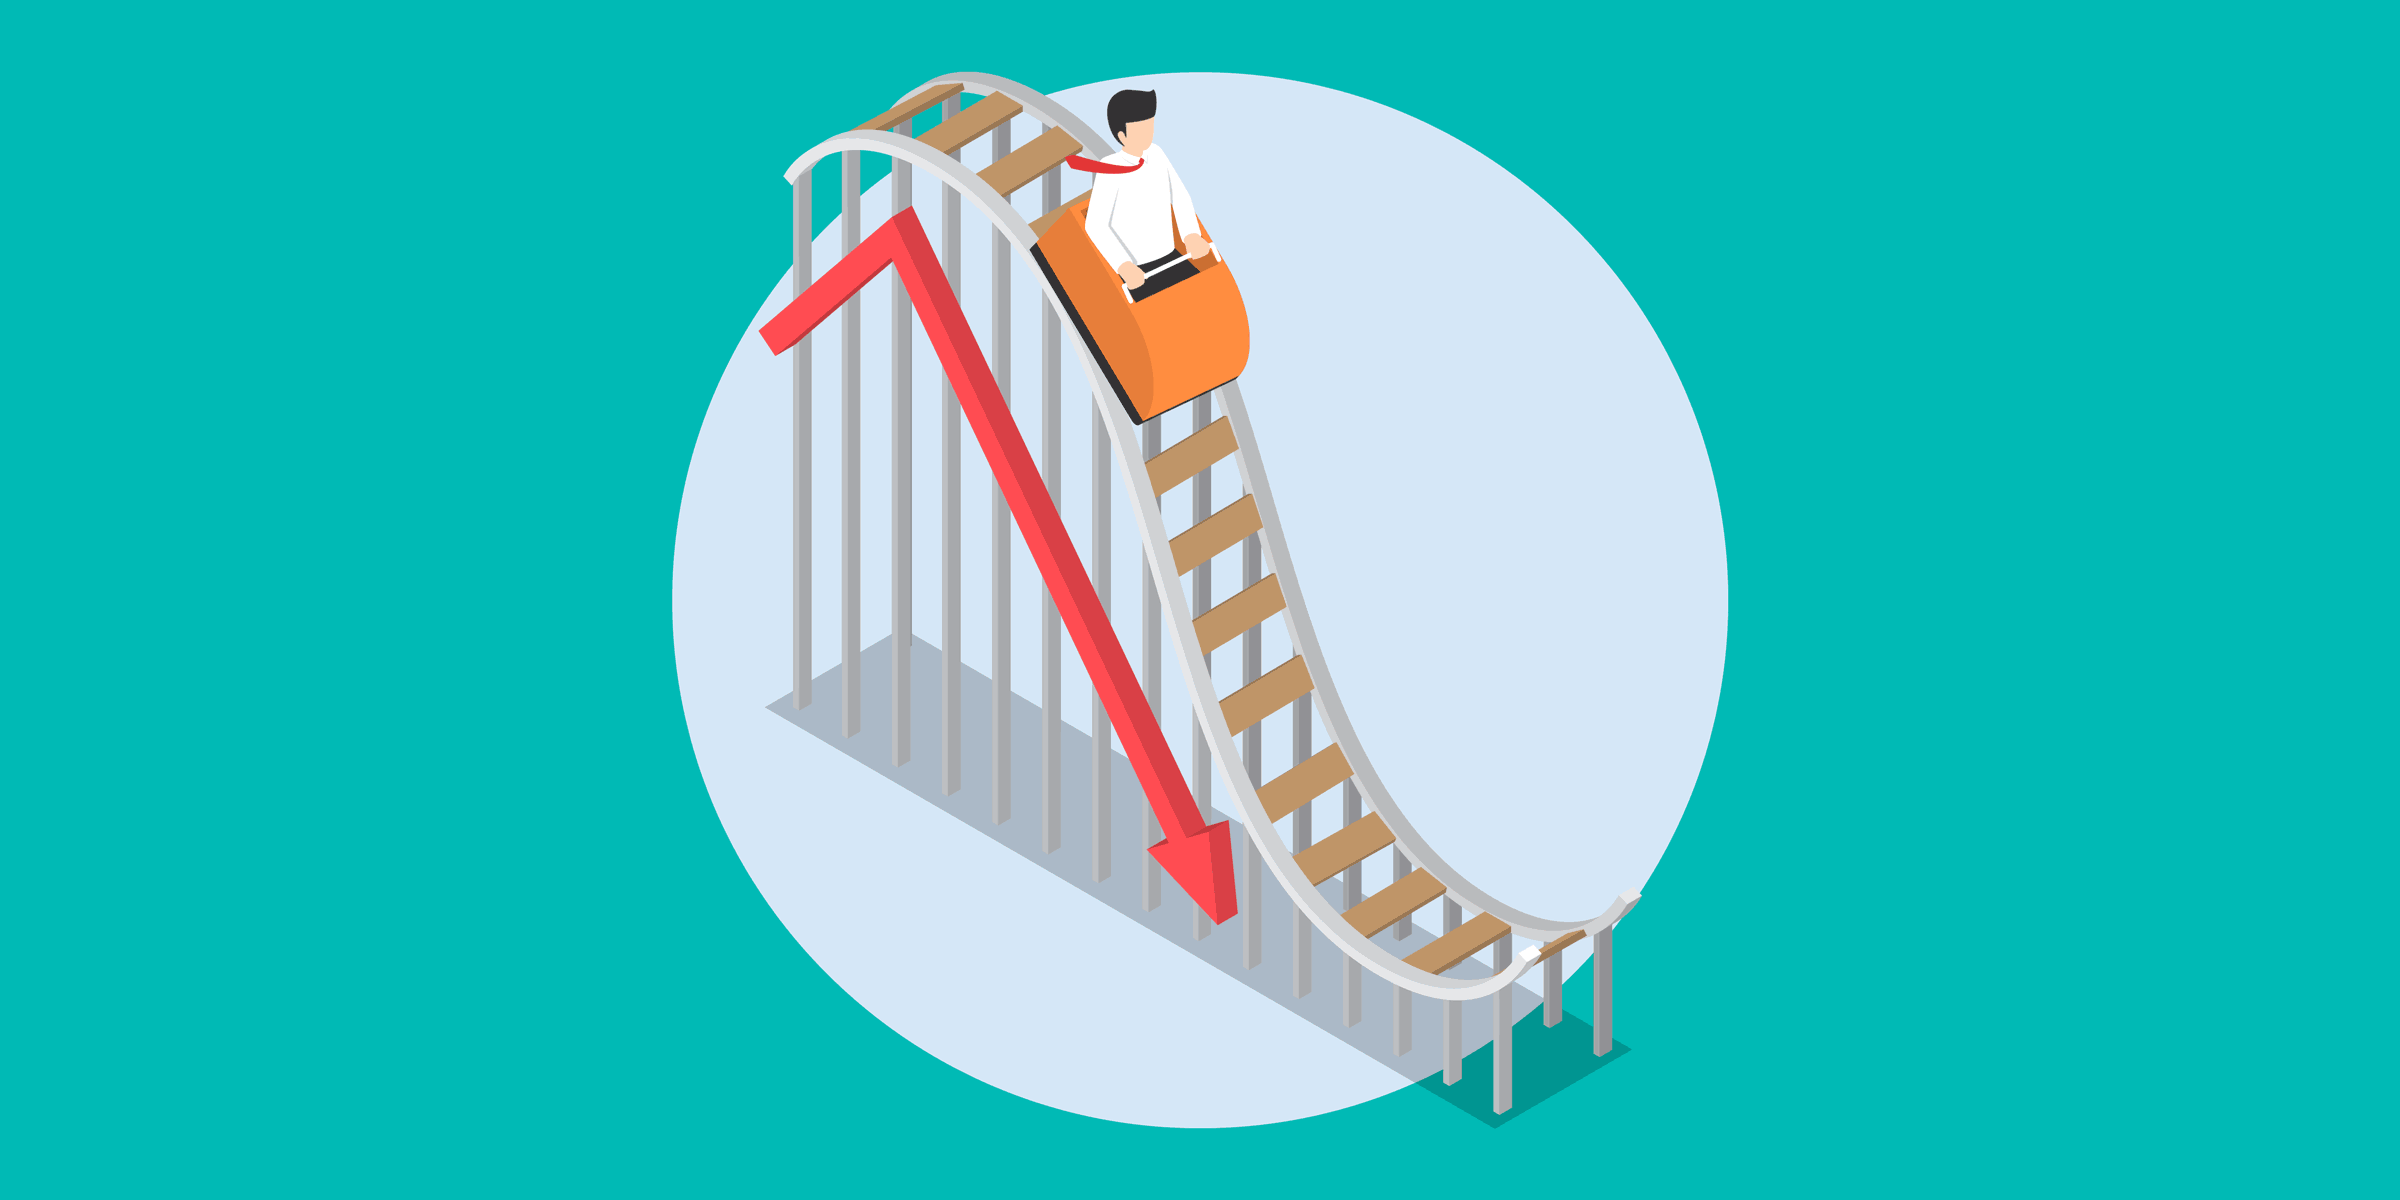 illustration of a person plunging downward on a roller coaster next to a downward trend line, representing a significant decrease in donations to nonprofits because of the new tax law